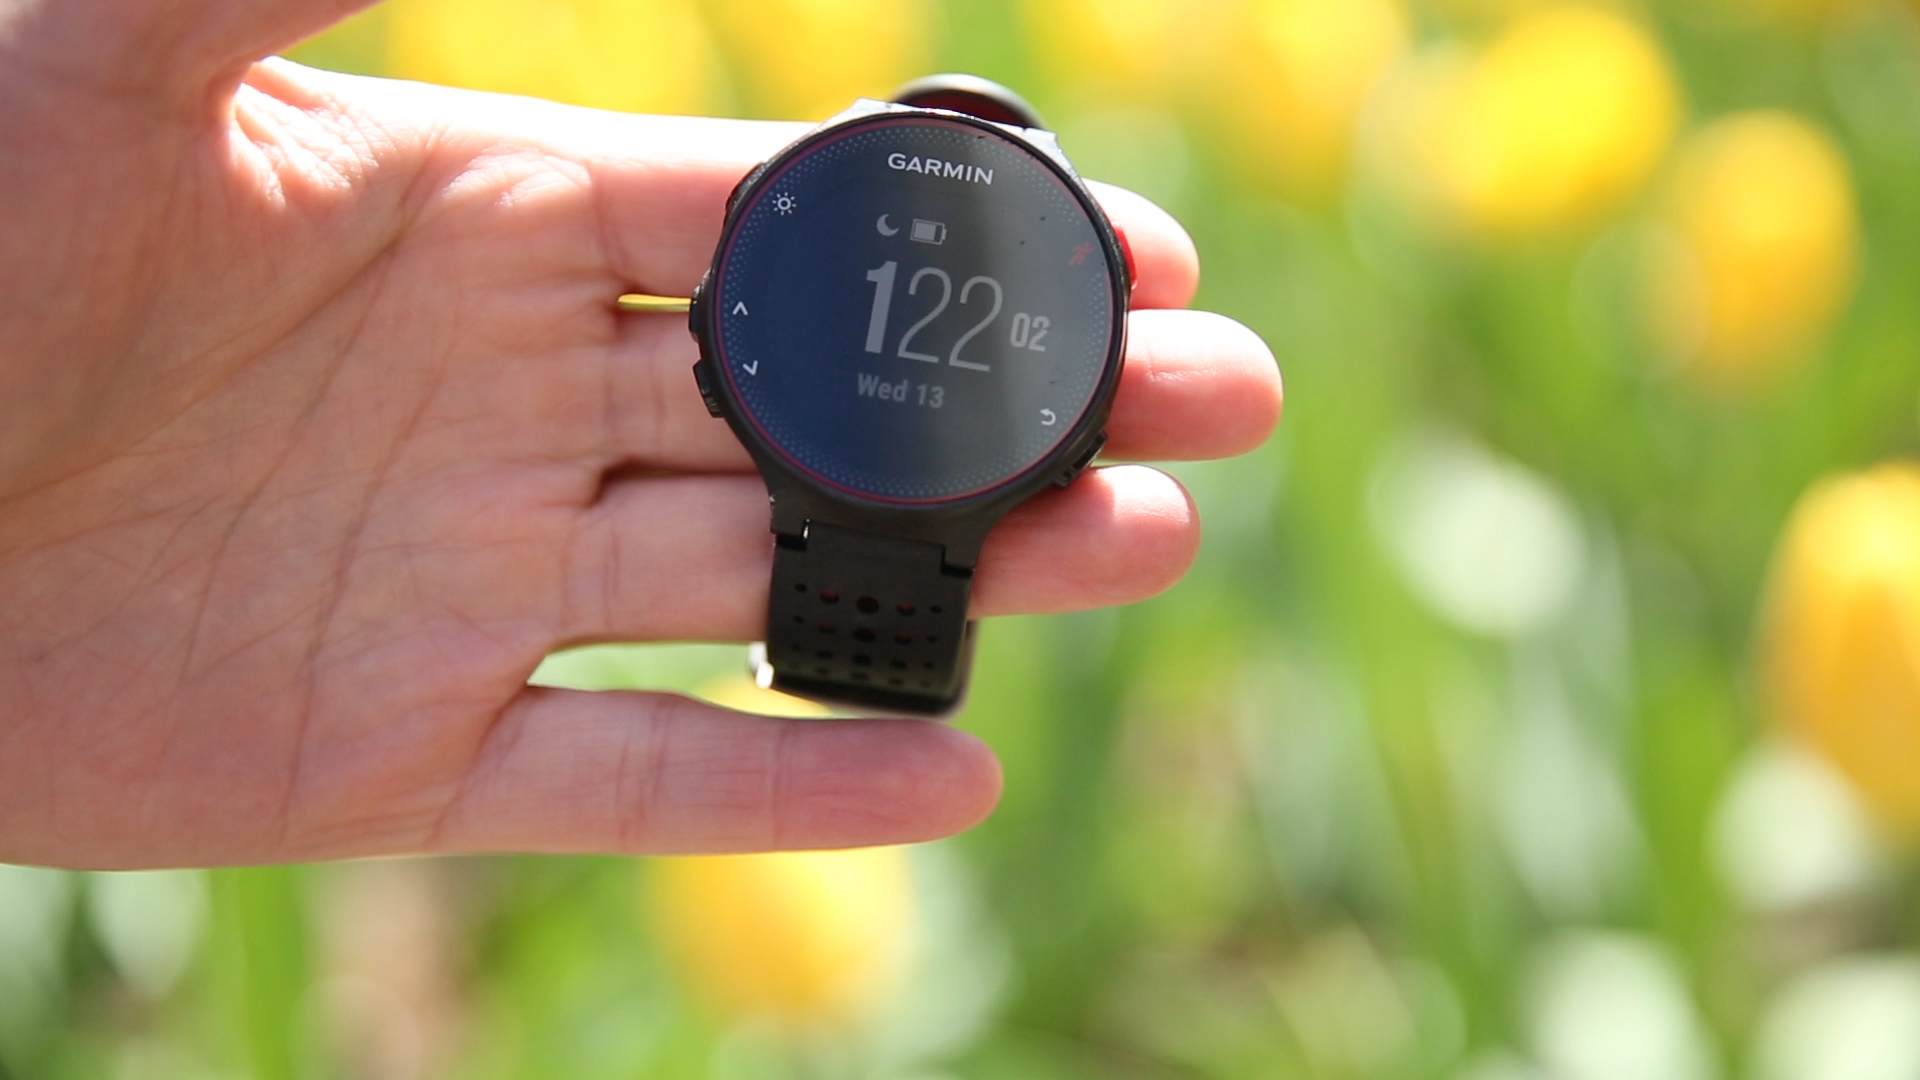 Video: Garmin Forerunner 235 is amazing value for runners, serious or casual